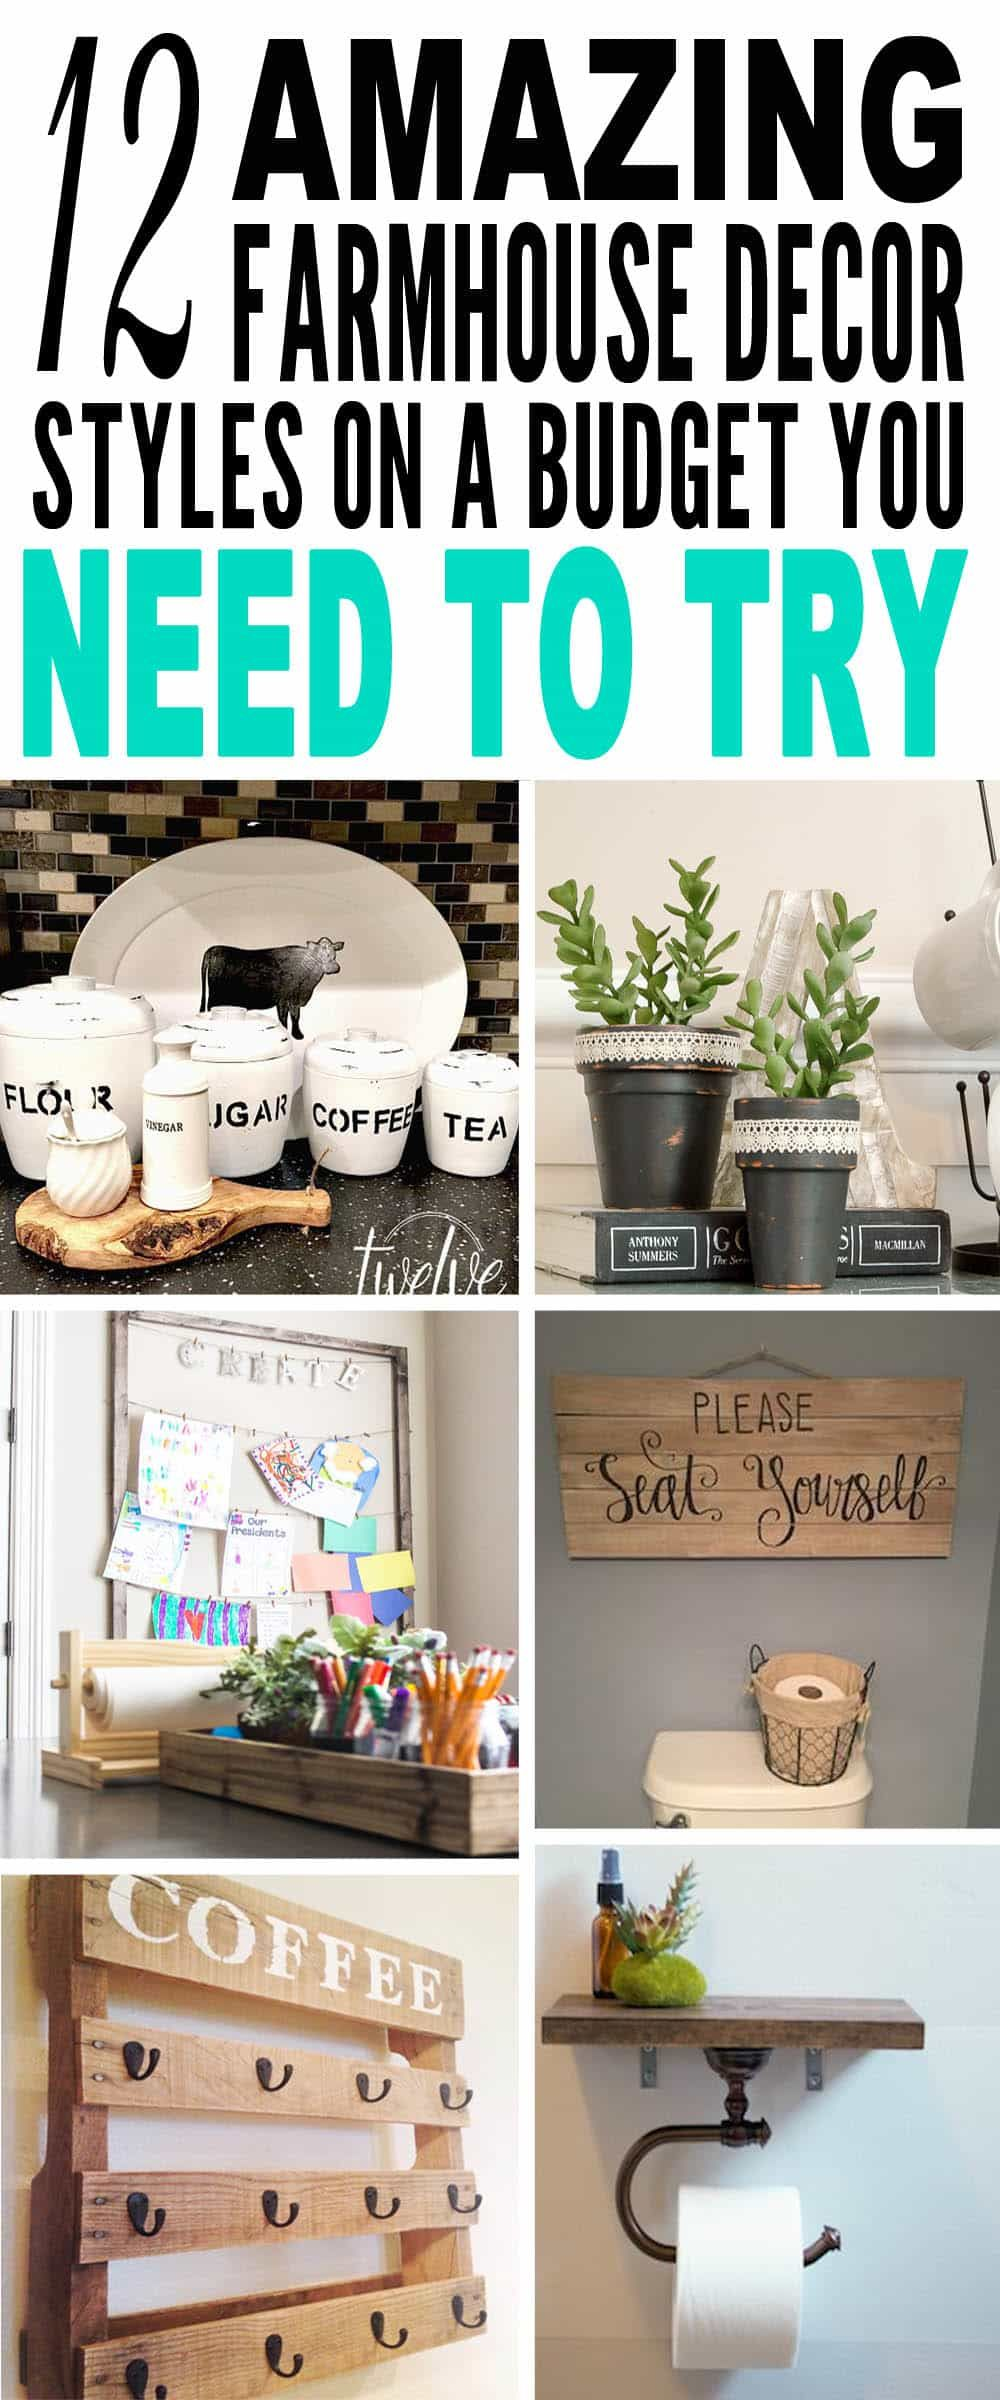 12 Amazing Farmhouse Decor Styles On A Budget You Need To Try -   24 farmhouse style on a budget